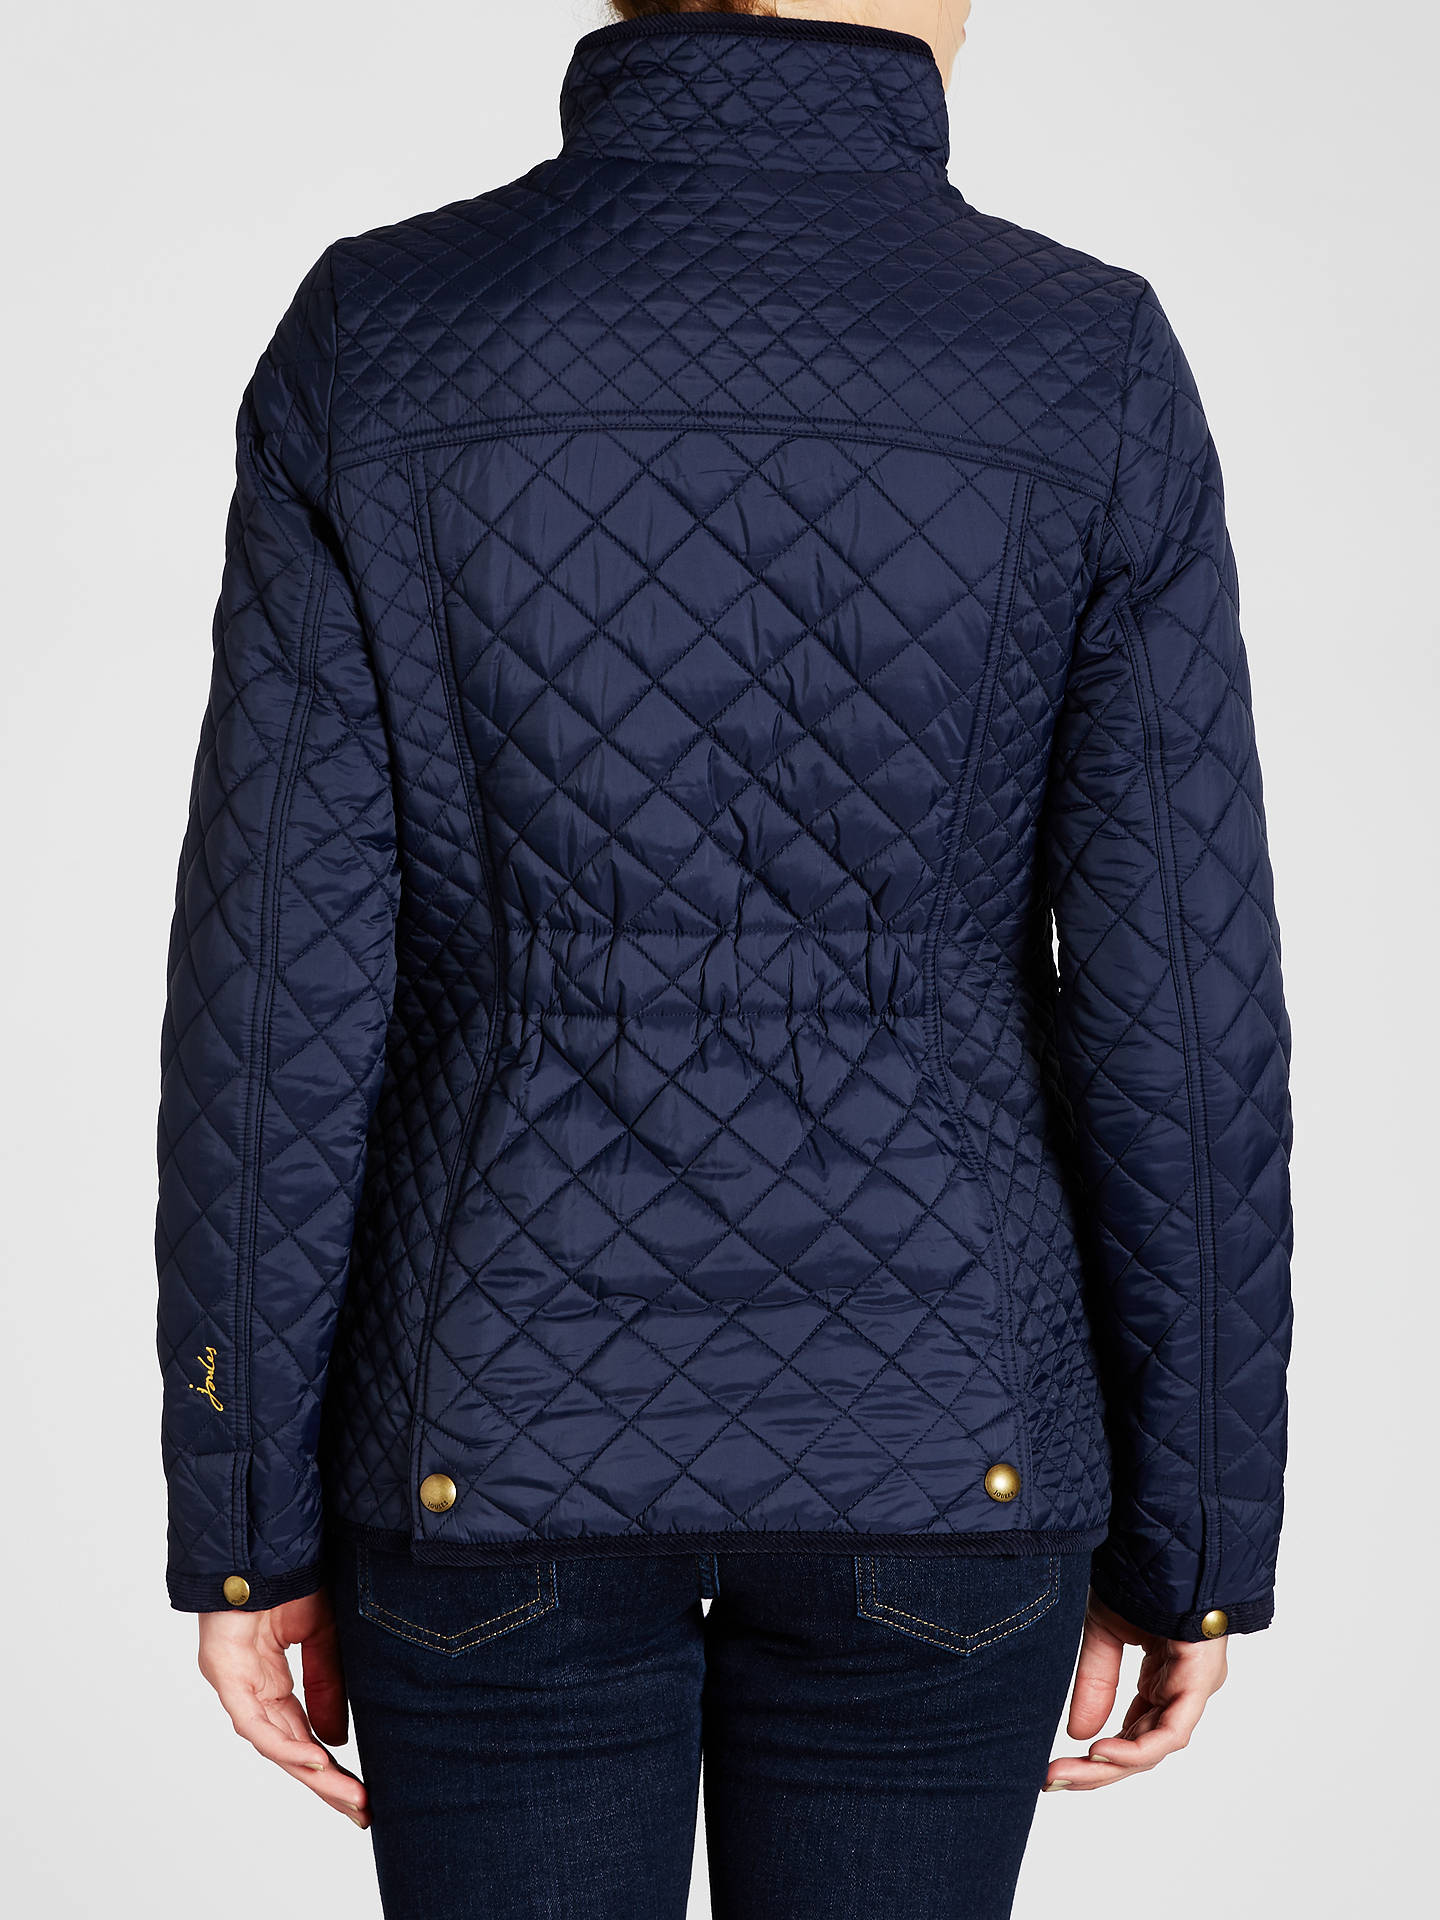 Buy Joules Newdale Classic Quilted Jacket, Marine Navy, 8 Online at johnlewis.com